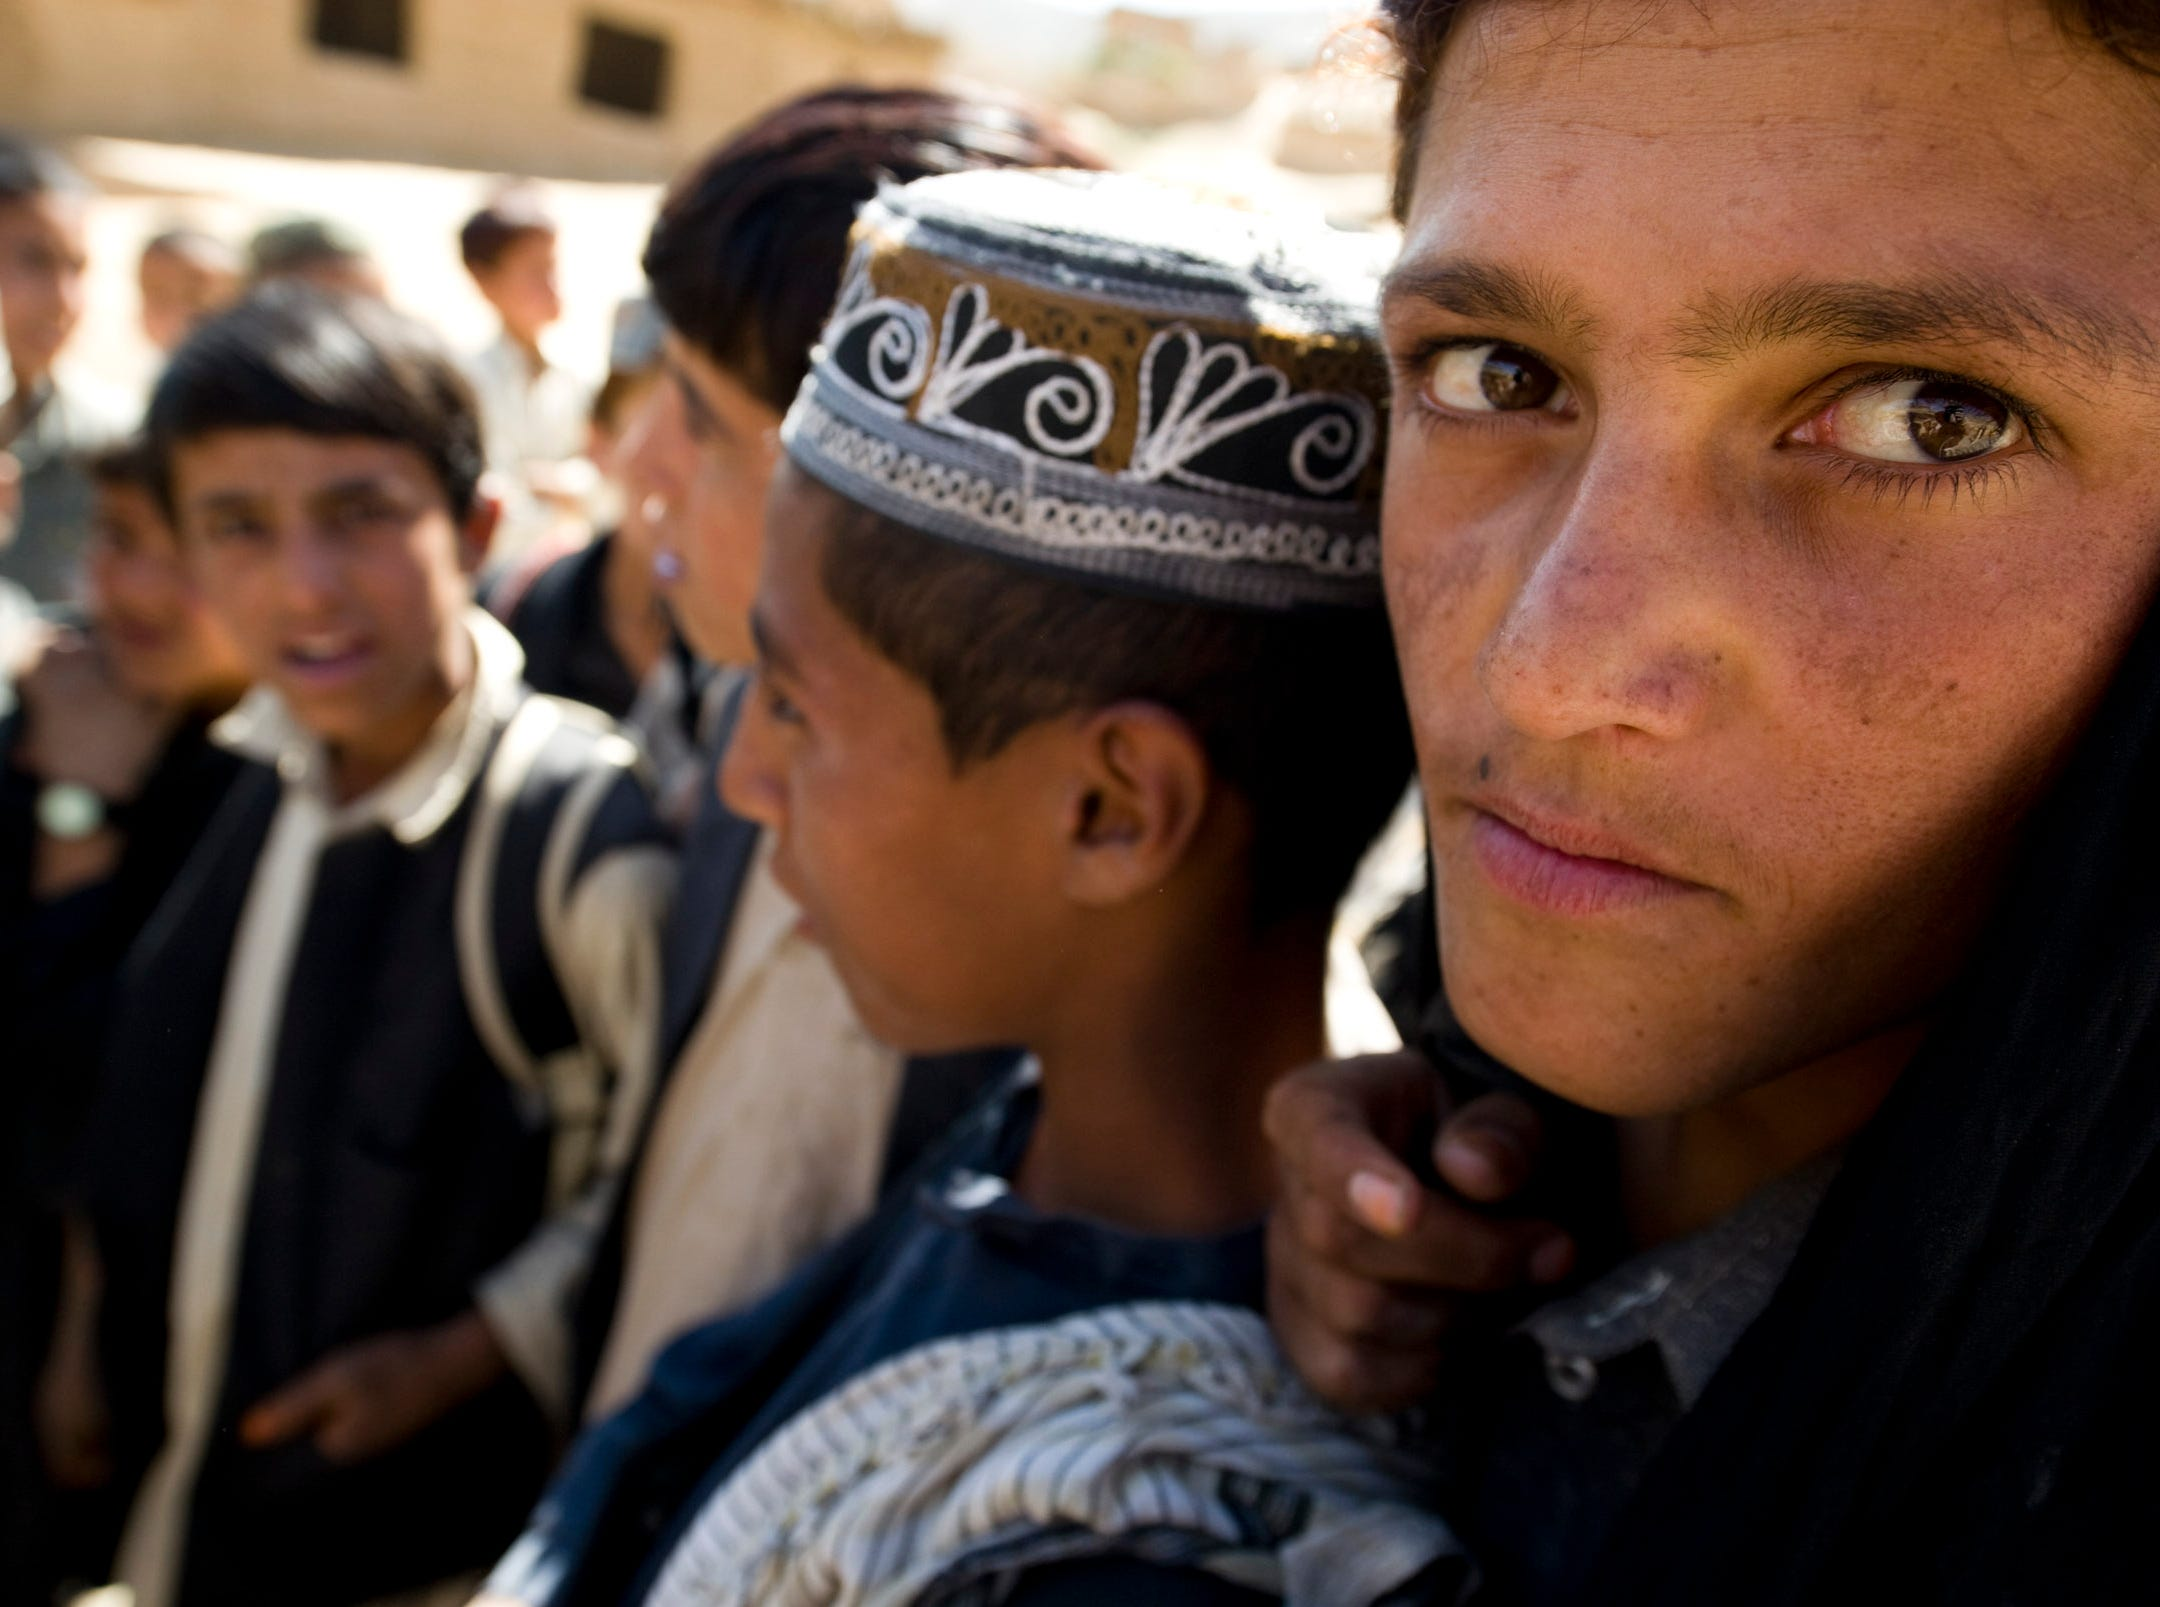 Afghan boys crowd around a Vermont National Guard soldier for an impromptu English lesson at Shawo Kelay, a small village in the mountains of Parwan Province northeast of Kabul on Thursday, September 23, 2010.